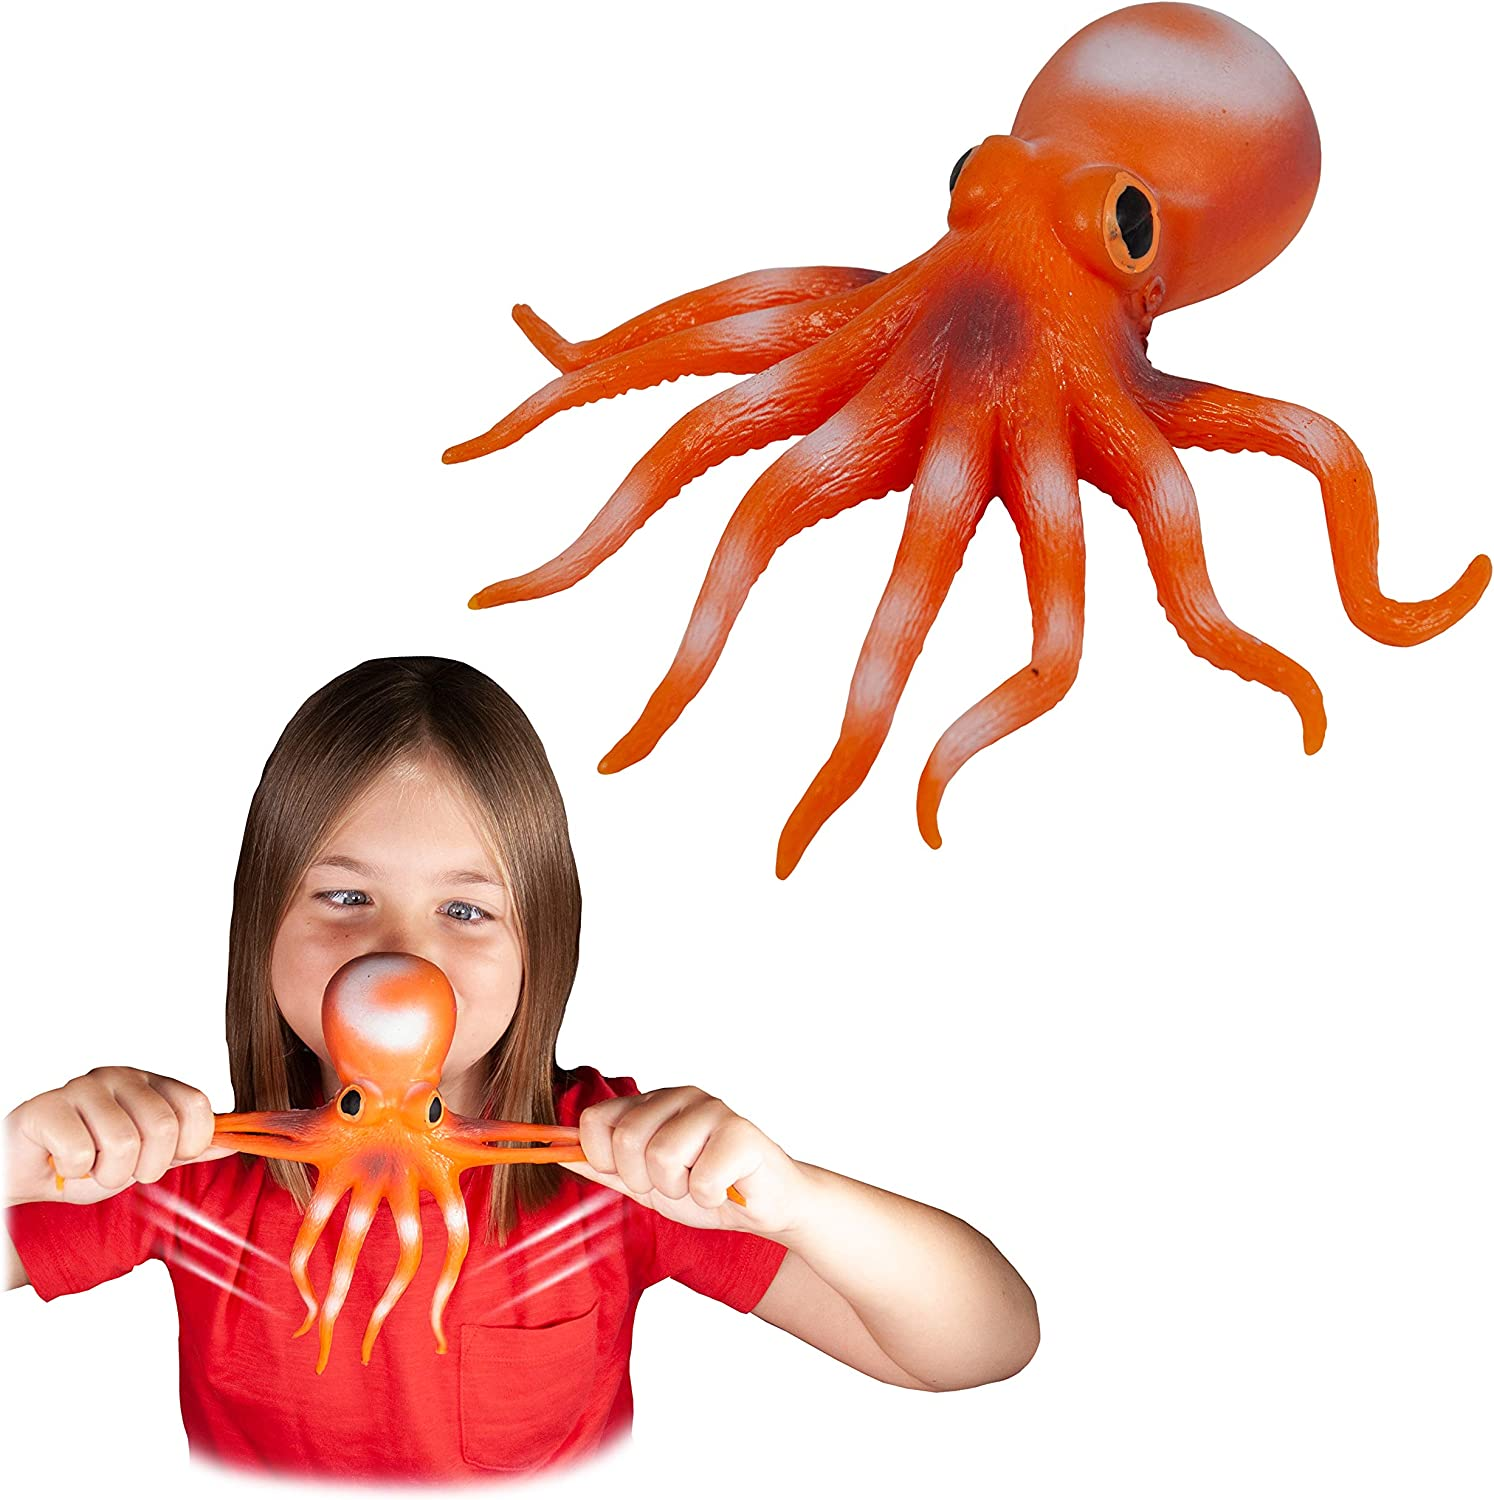 Stretchy octopus toy and image of girl playing with the octopus toy.